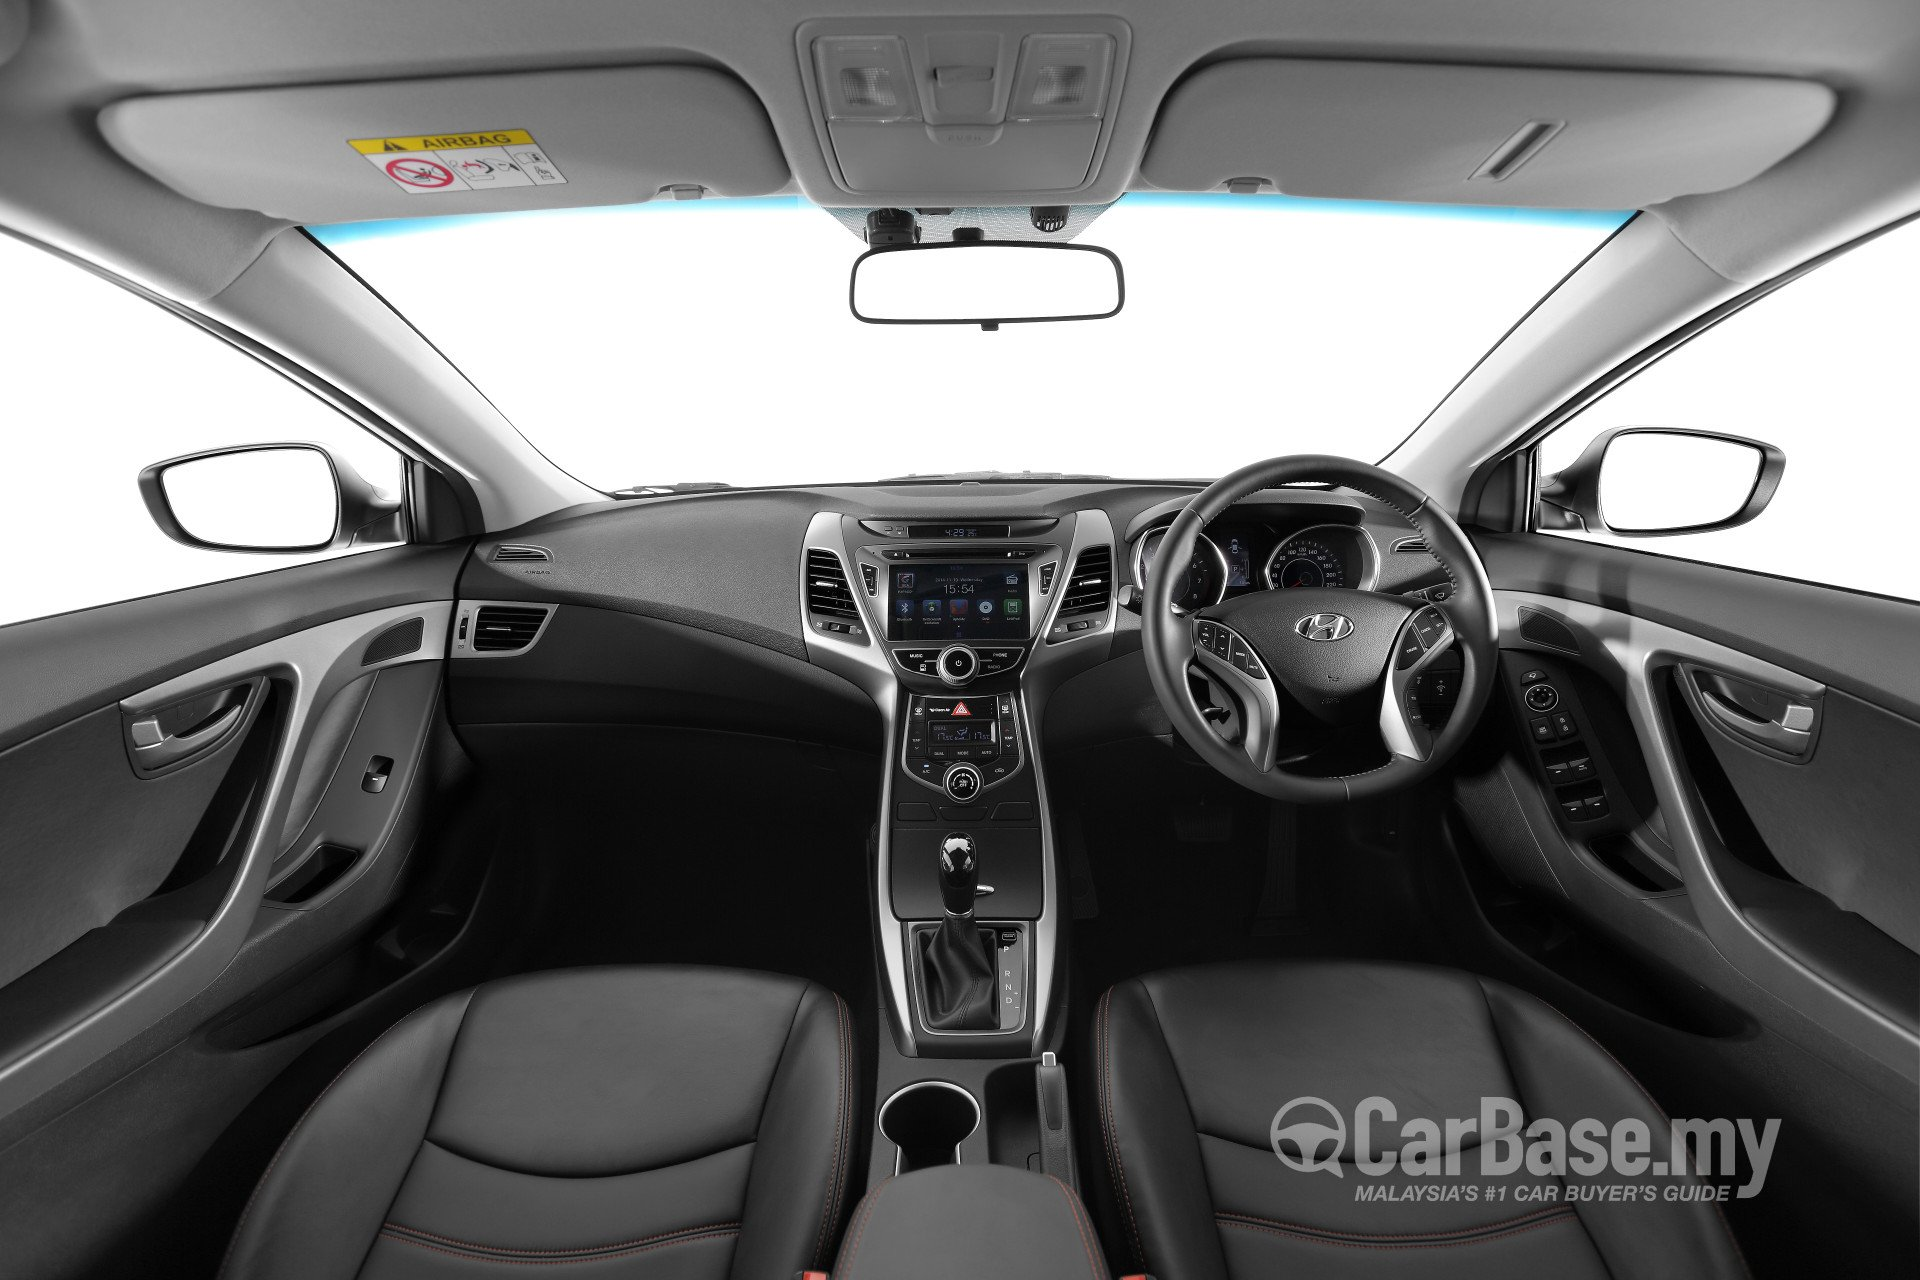 Hyundai Elantra Md Facelift 2015 Interior Image 20082 In Malaysia Reviews Specs Prices